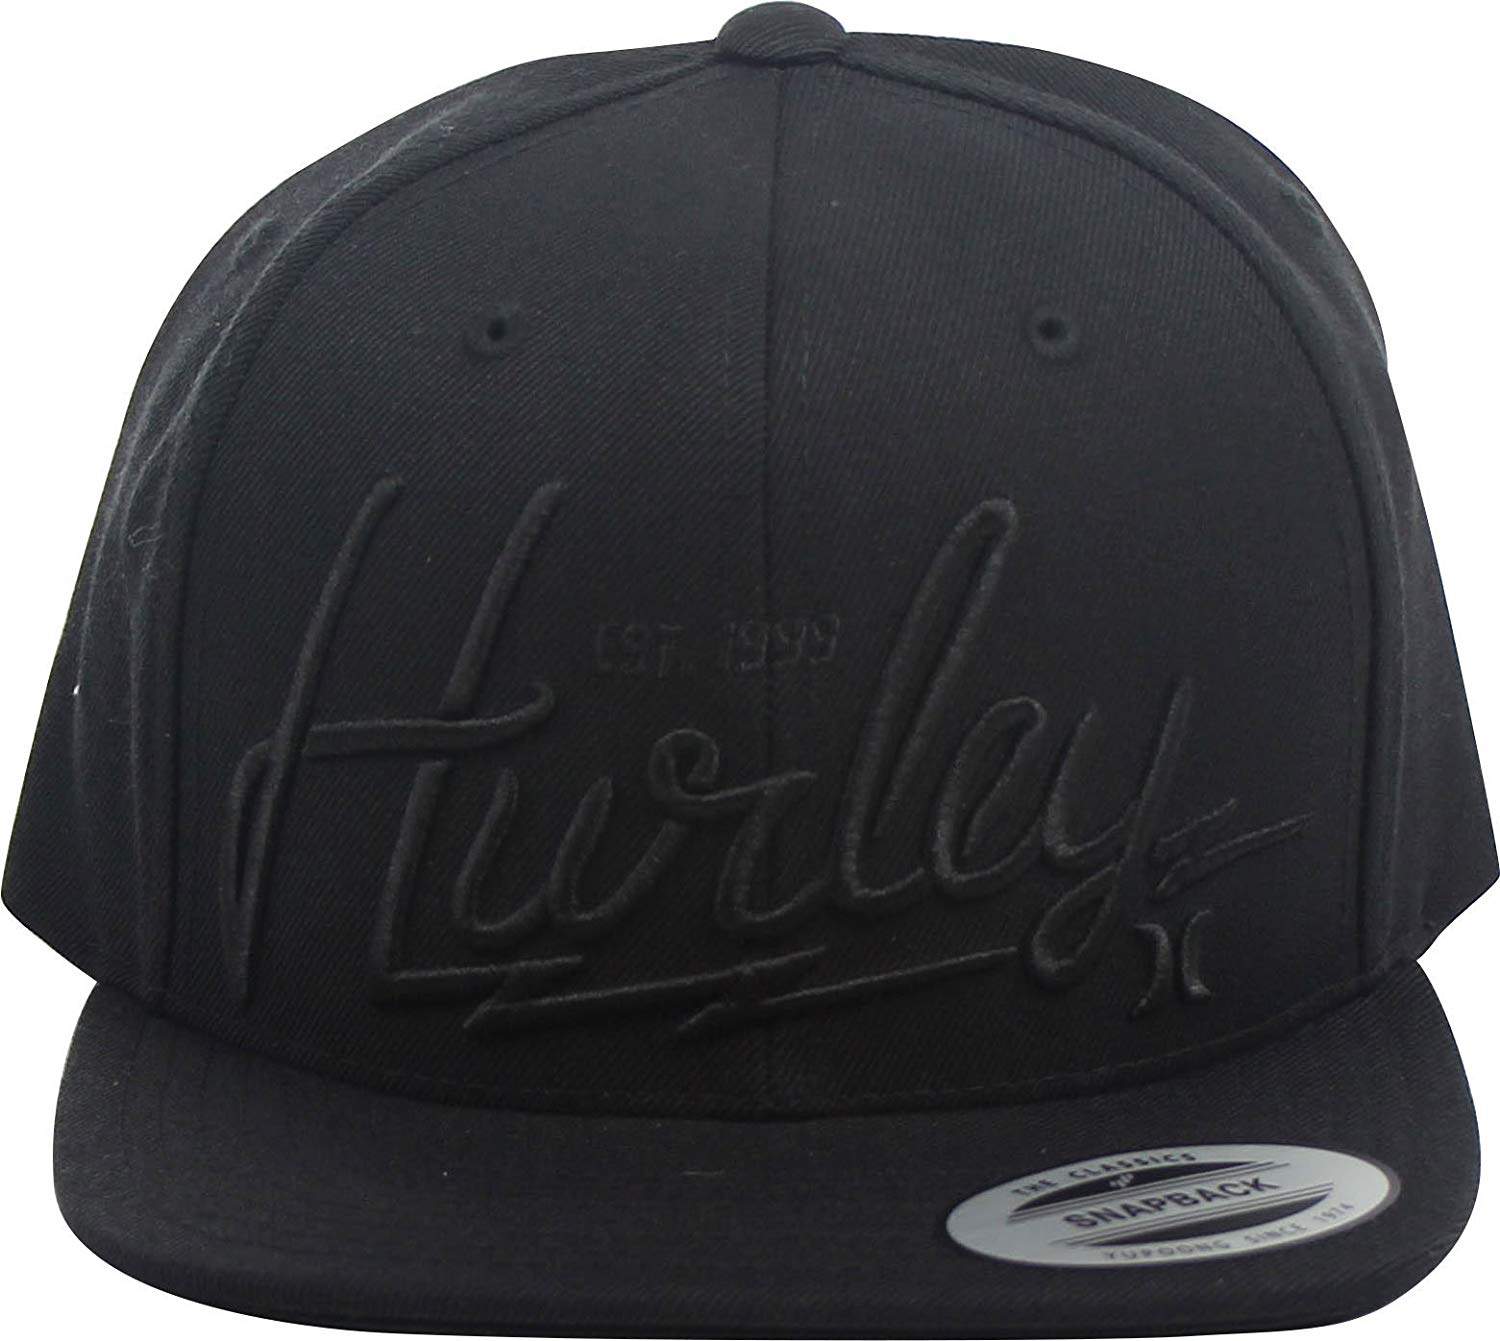 2ebff193ff72c Get Quotations · Hurley - Mens Bolts Hats Flex-Fit Hat